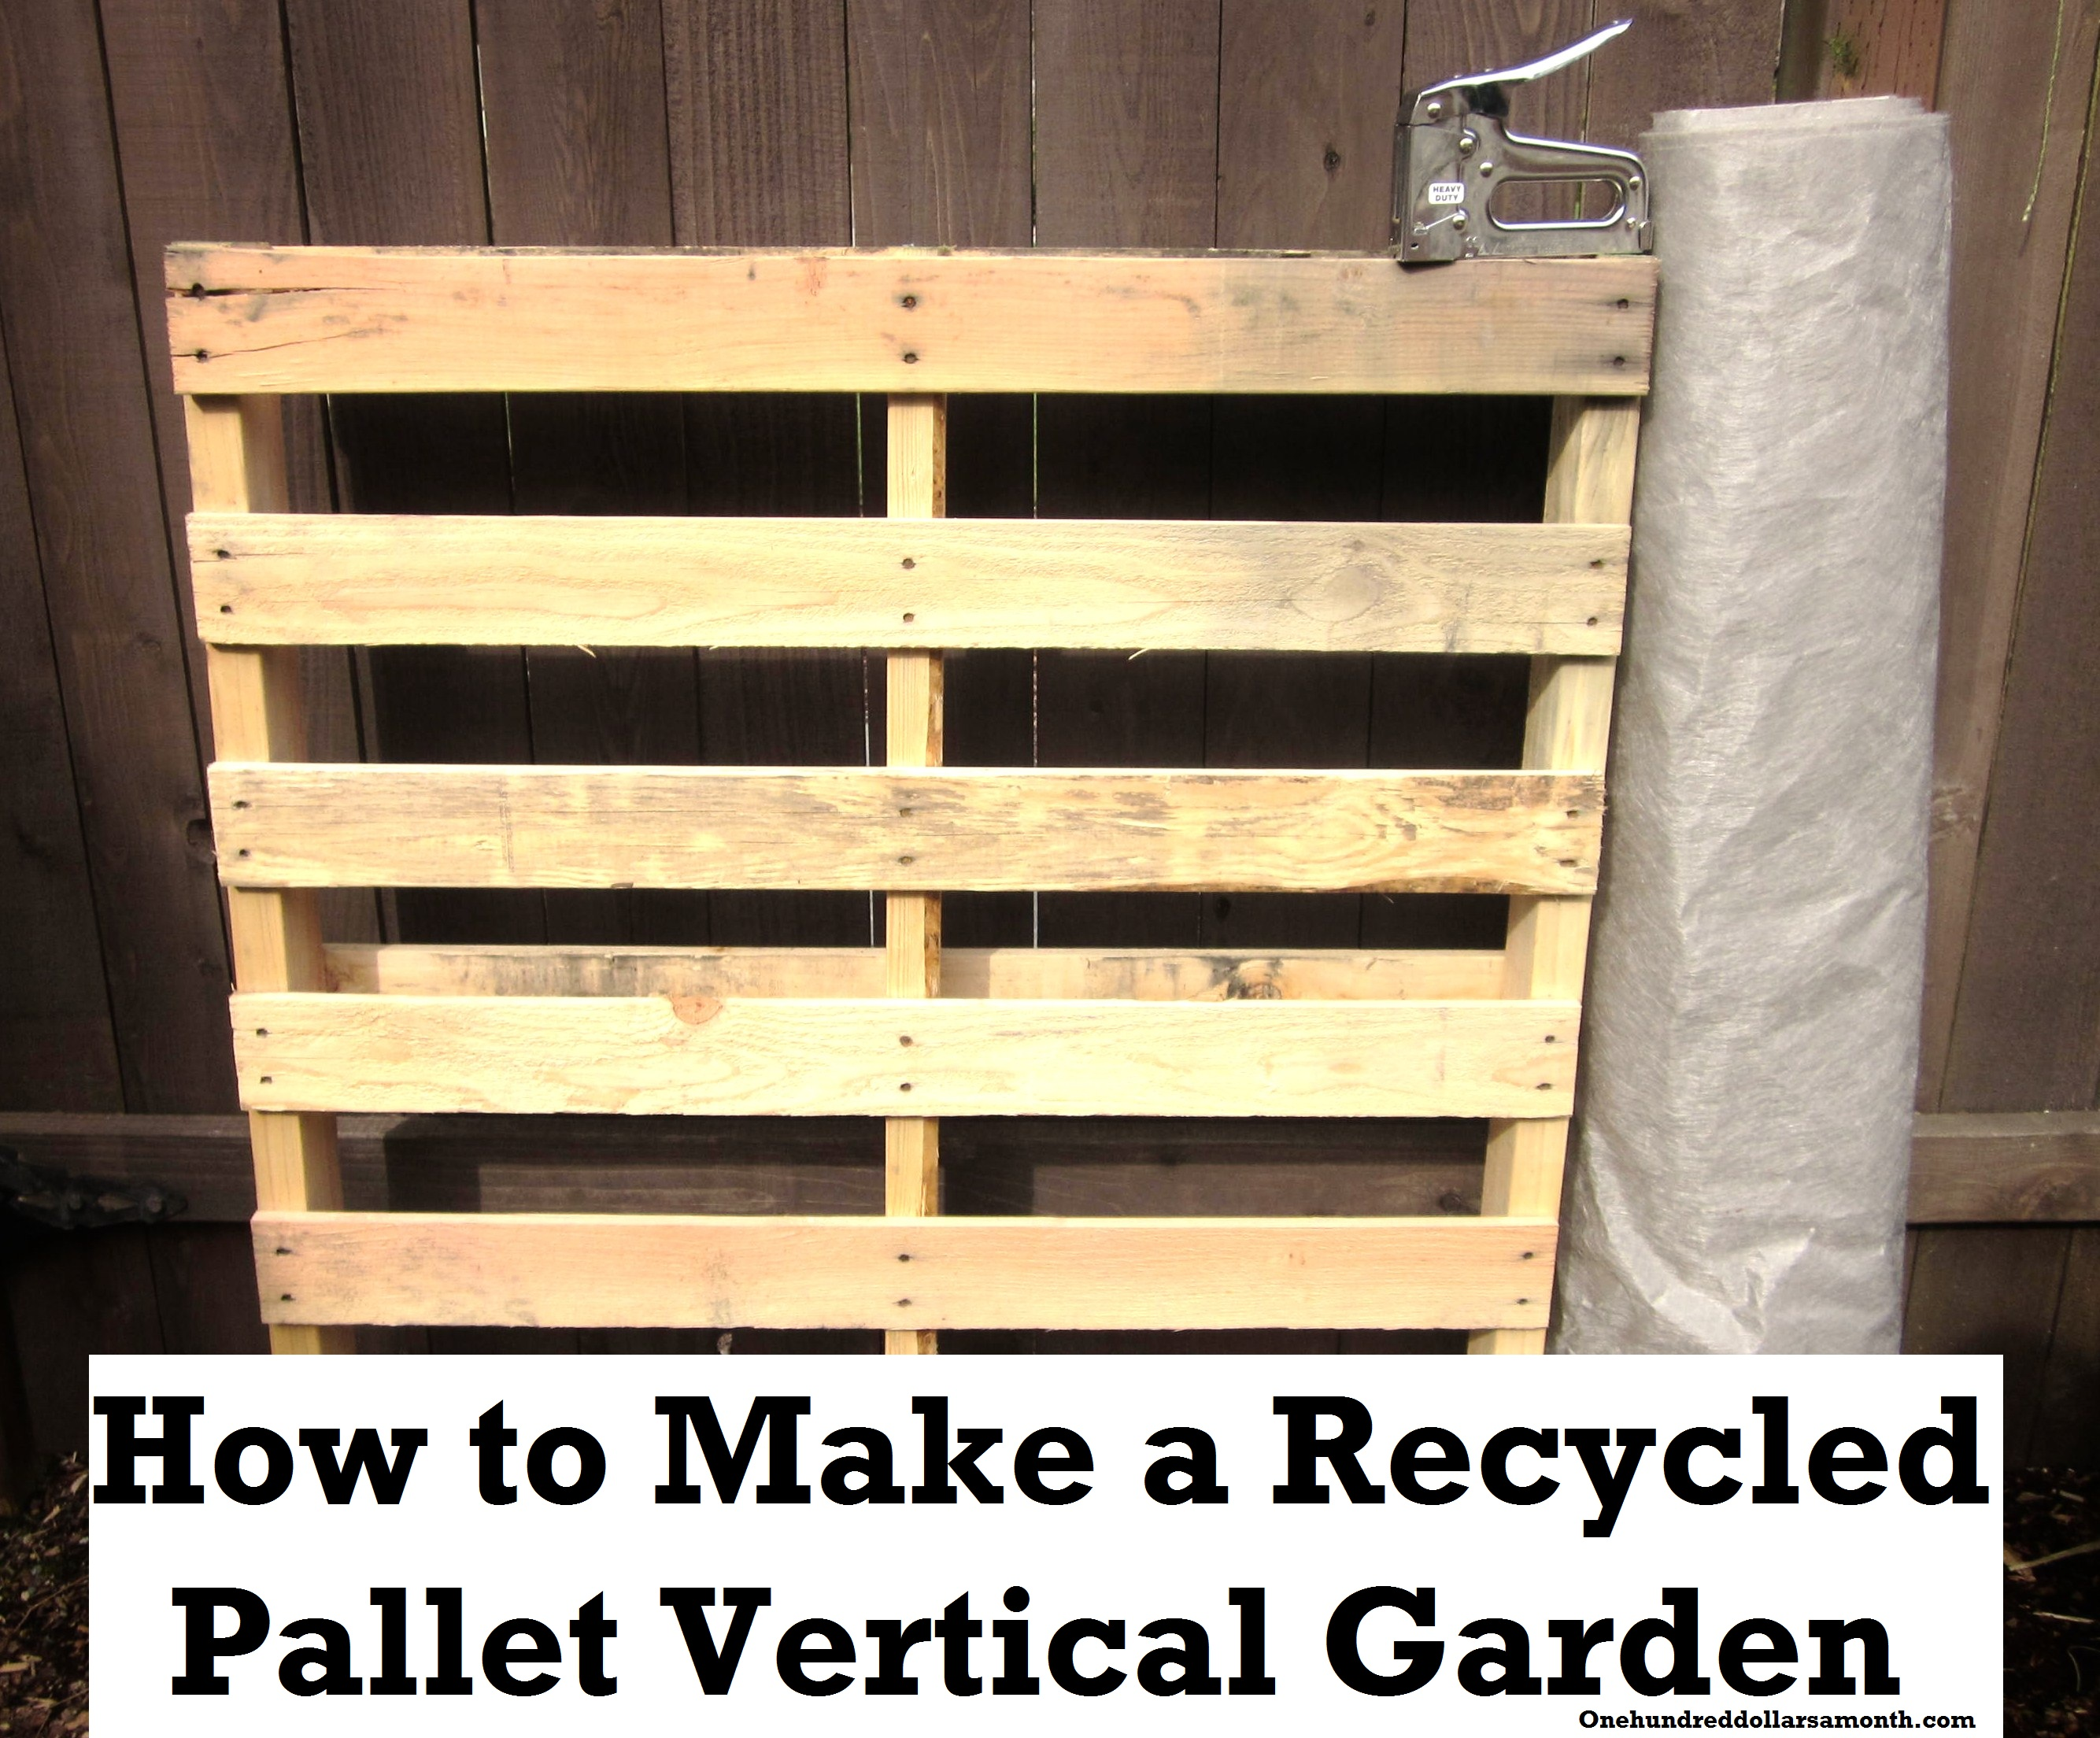 d2379ad915 How to Make a Recycled Pallet Vertical Garden - One Hundred Dollars a Month